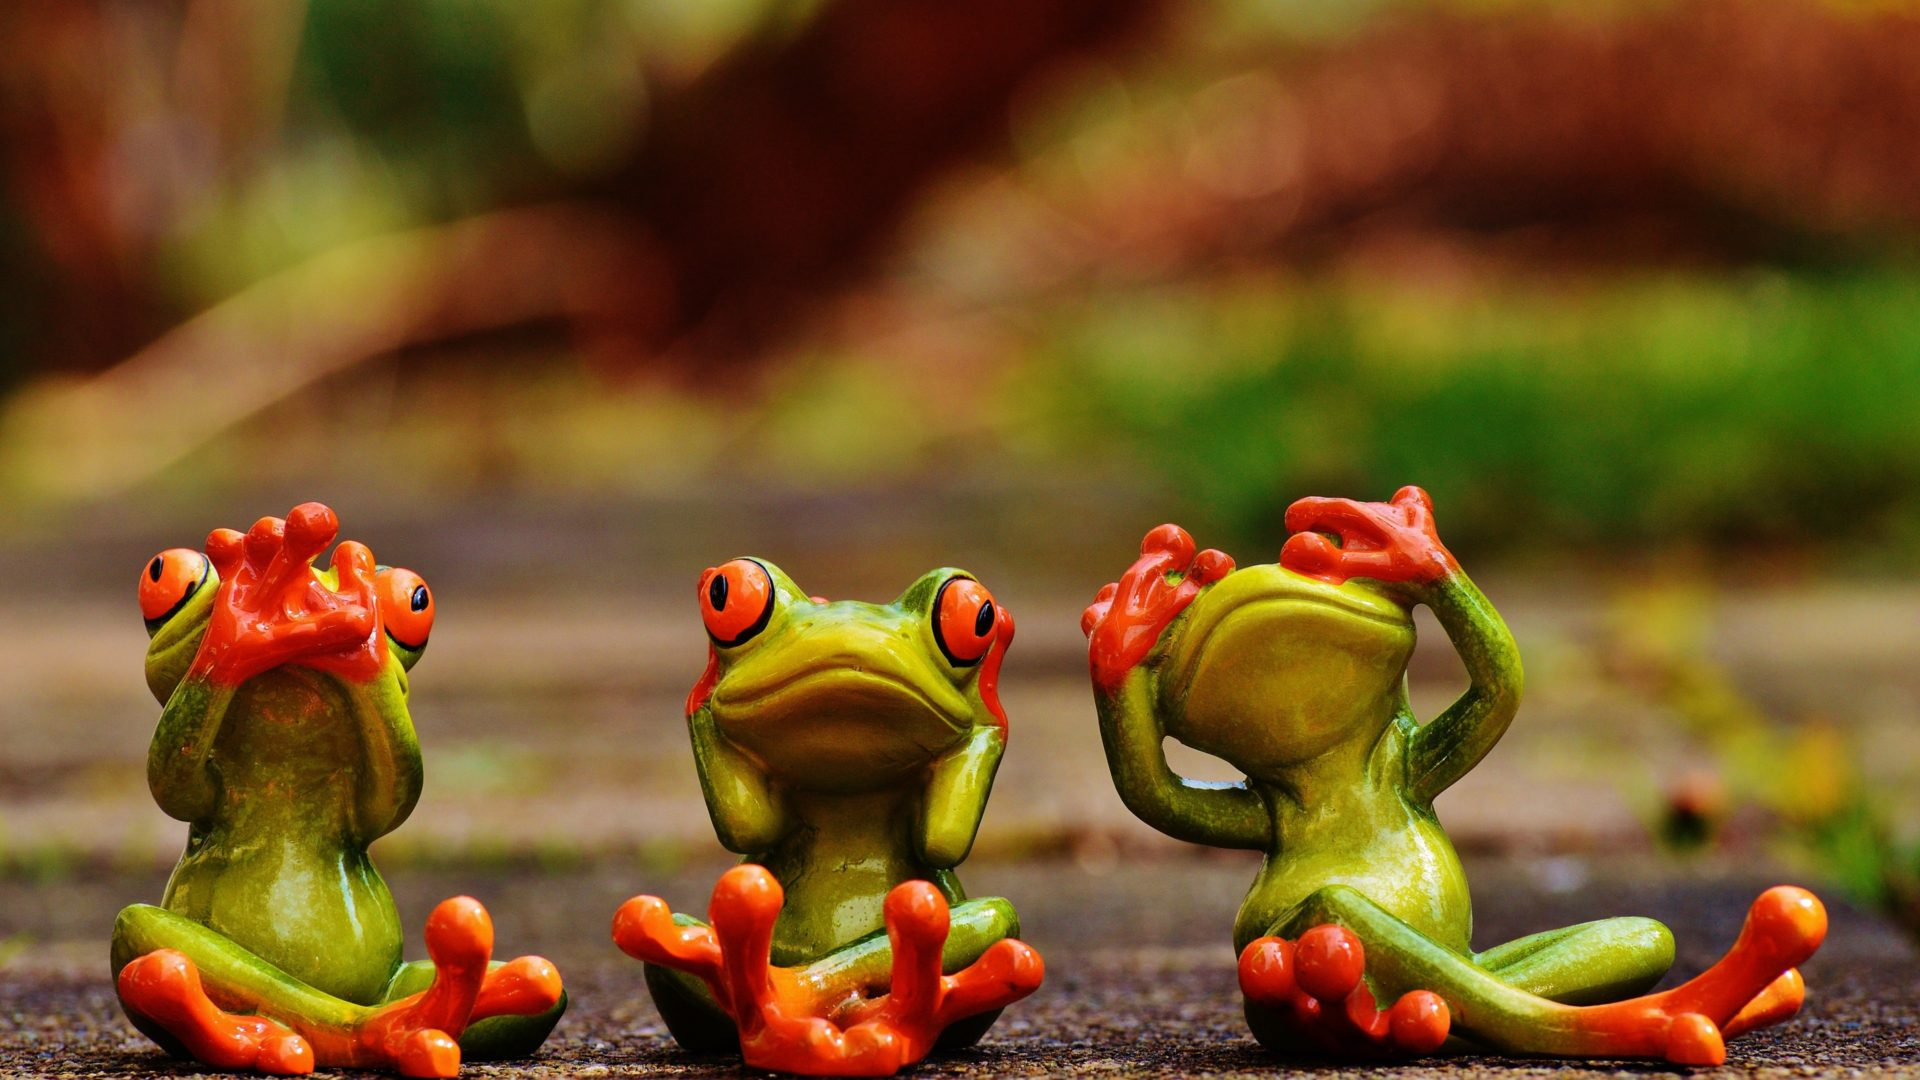 New Cute Girl Wallpaper Download Cute Green Frogs With Red Eyes 3 D Wallpaper Hd 3840x2160